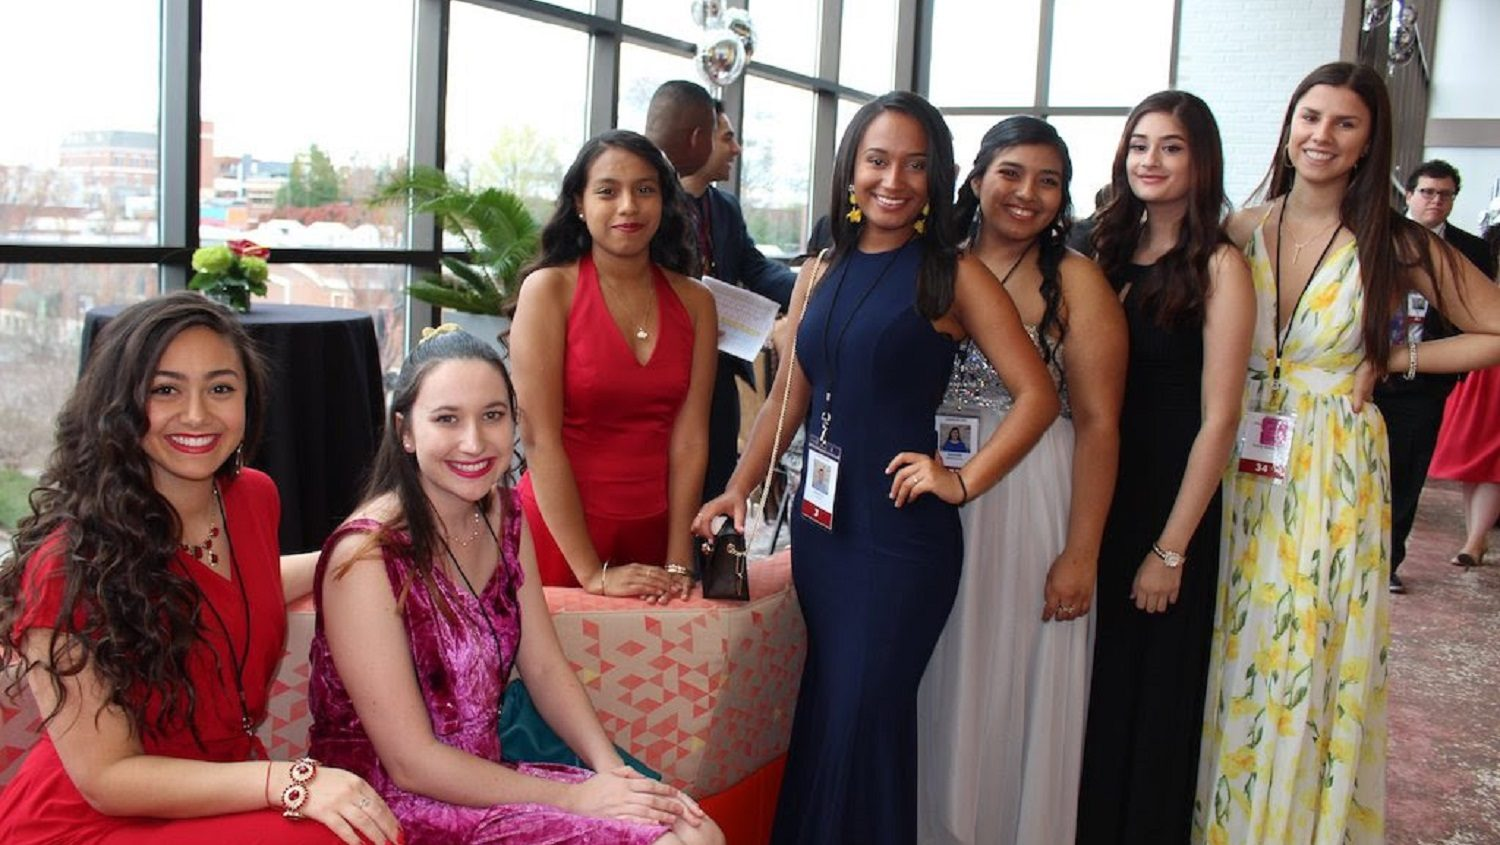 A group of people in formal dresses pose for the camera